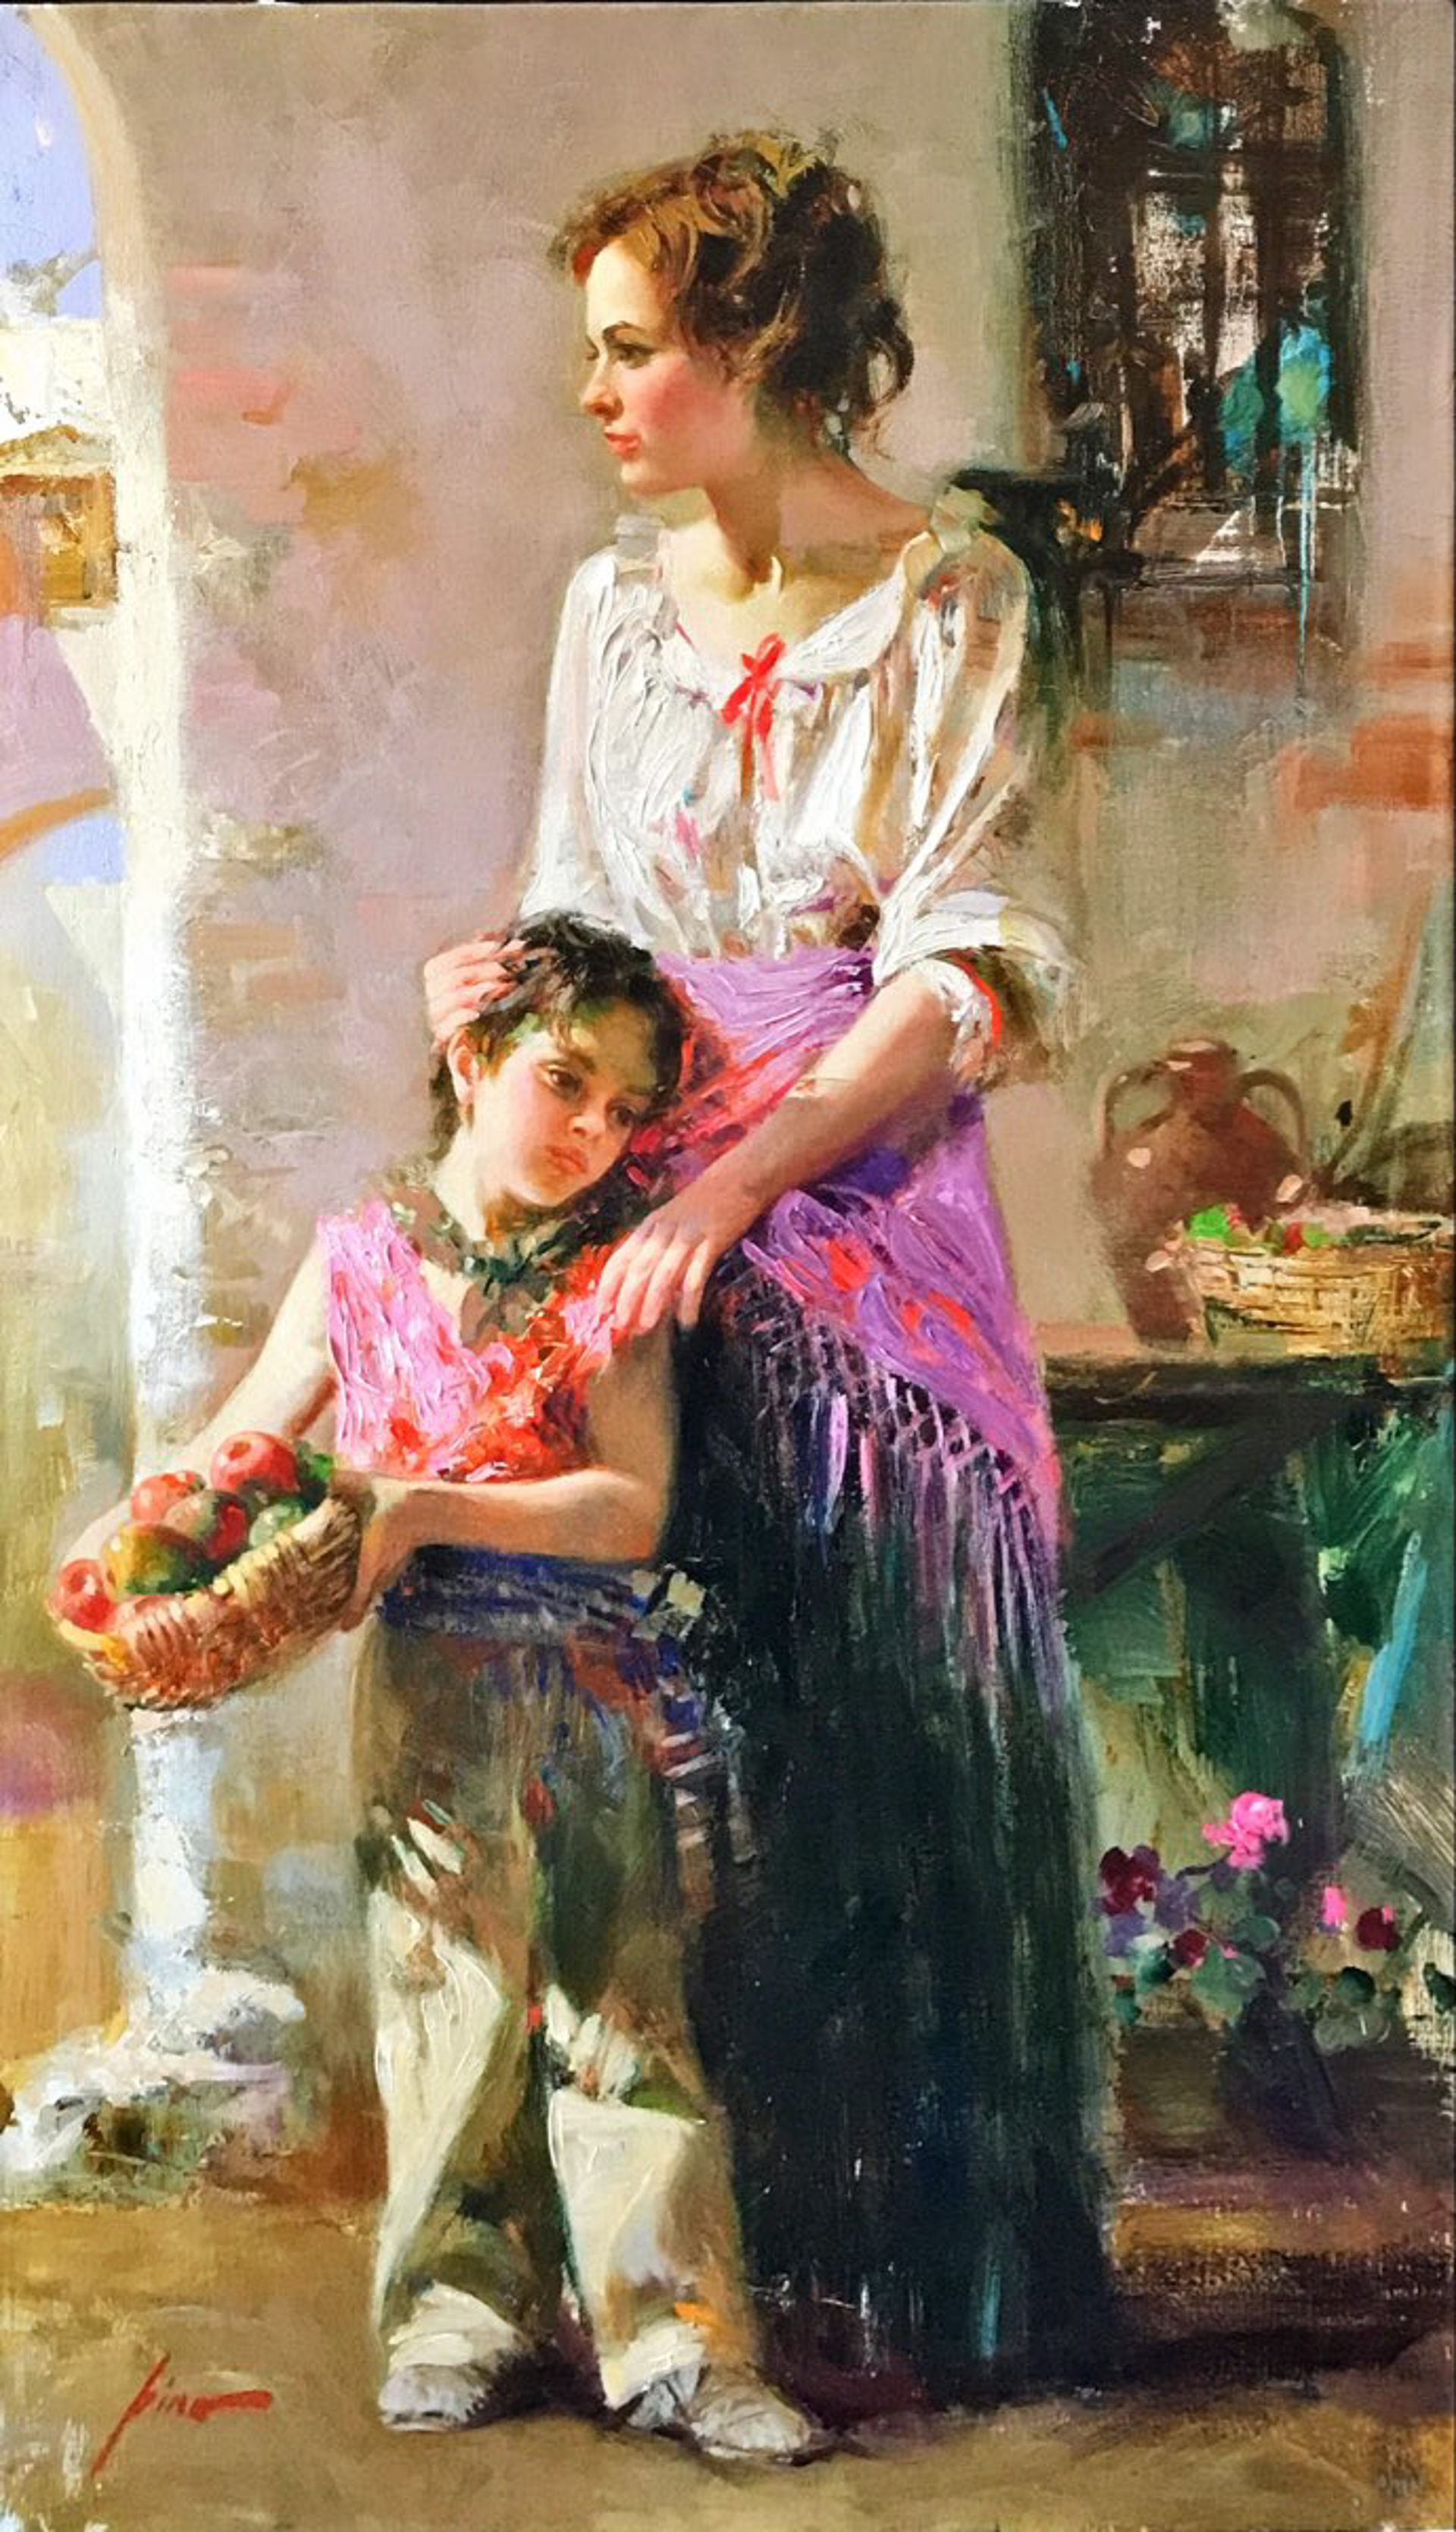 Country Life by Pino